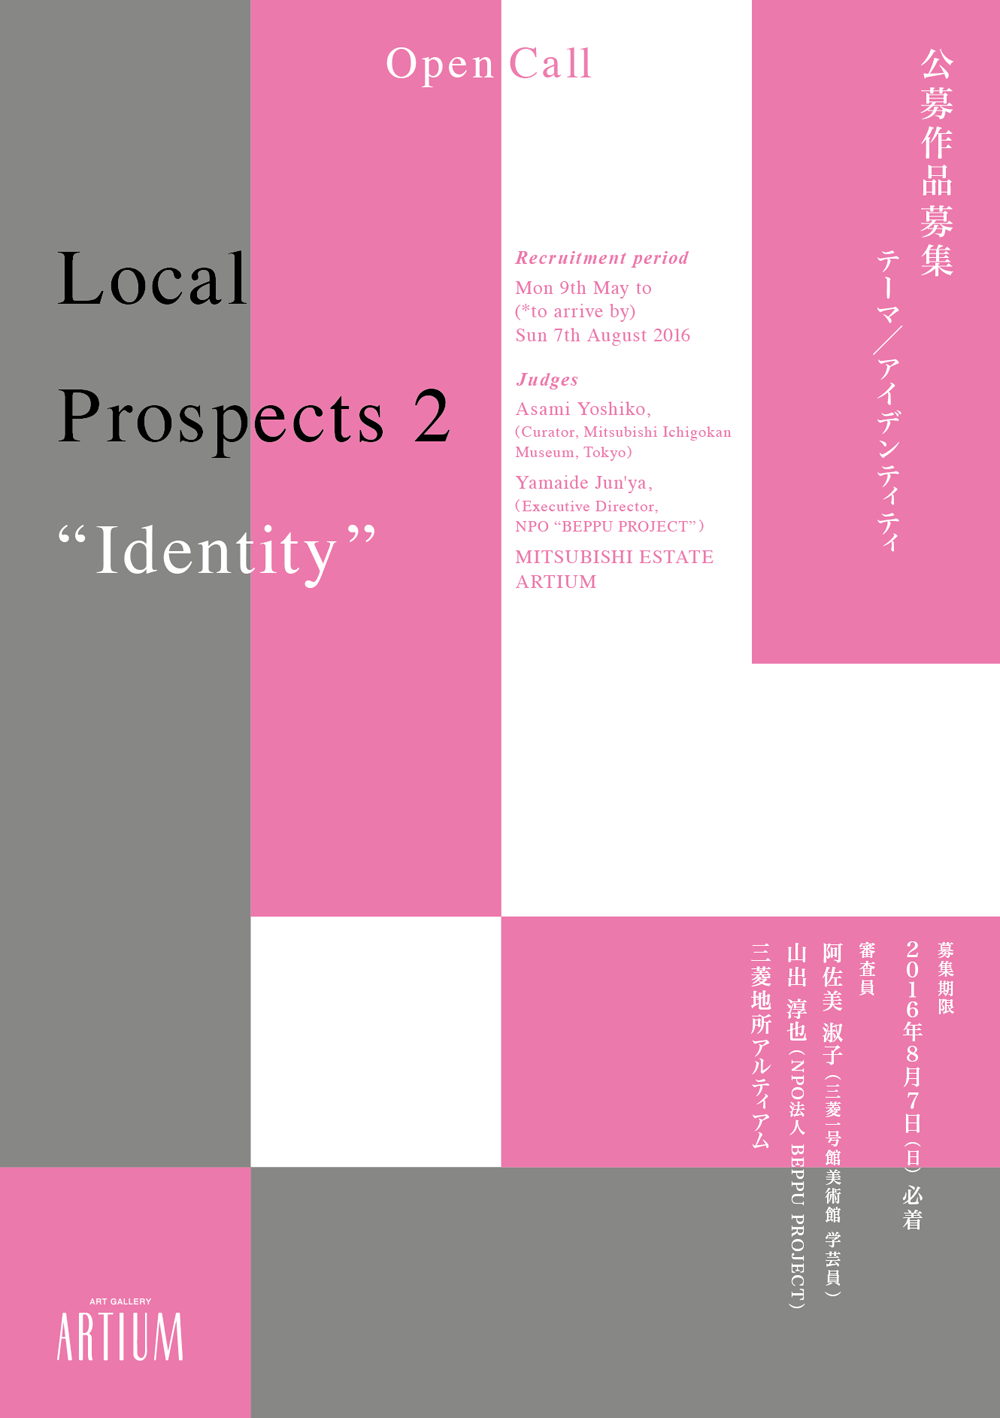 Local Prospects 2 公募告知 Open call